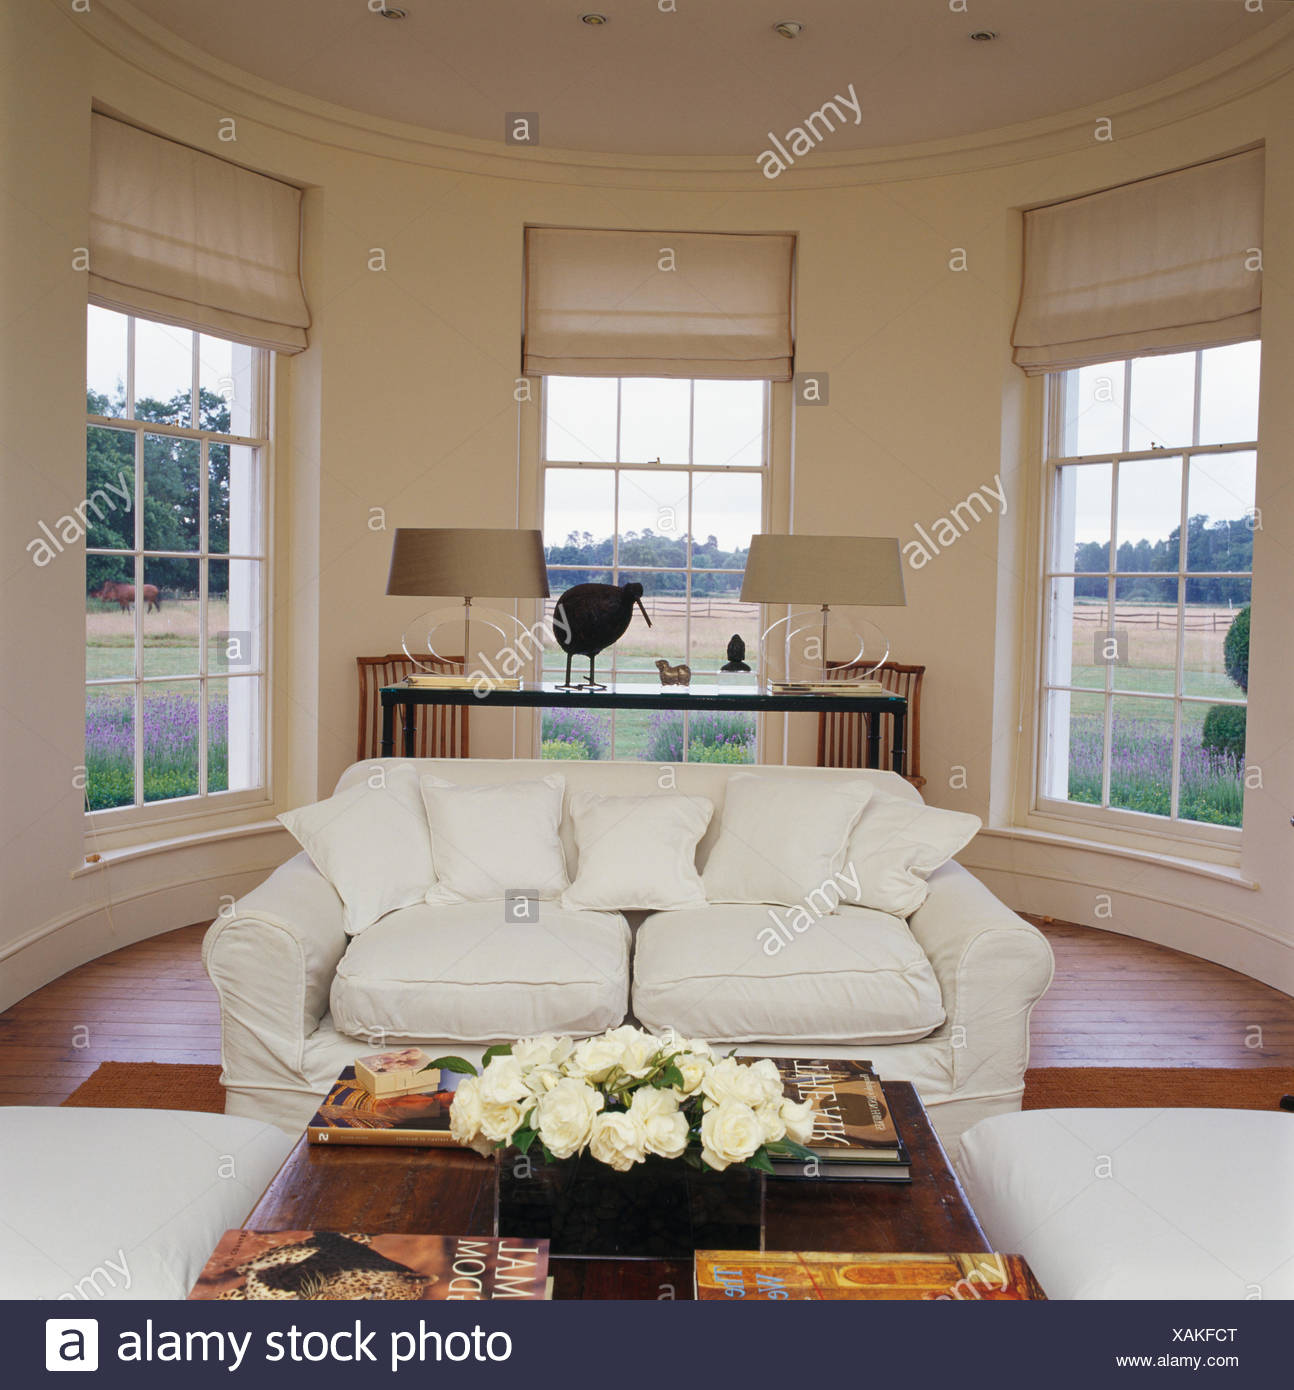 White sofa in front of large bay windows with white blinds in country drawing room - Stock Image